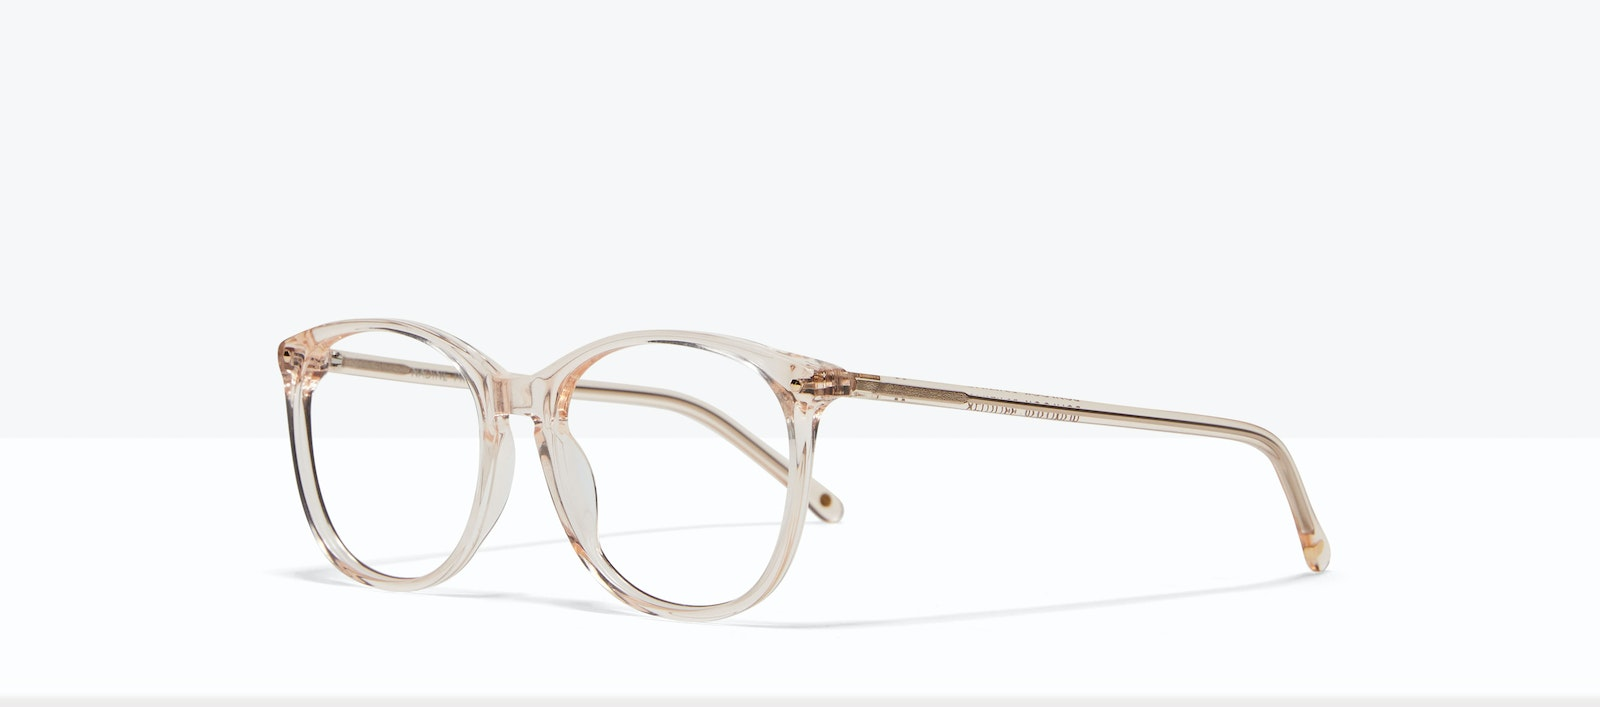 Affordable Fashion Glasses Rectangle Square Round Eyeglasses Women Nadine Prosecco Tilt